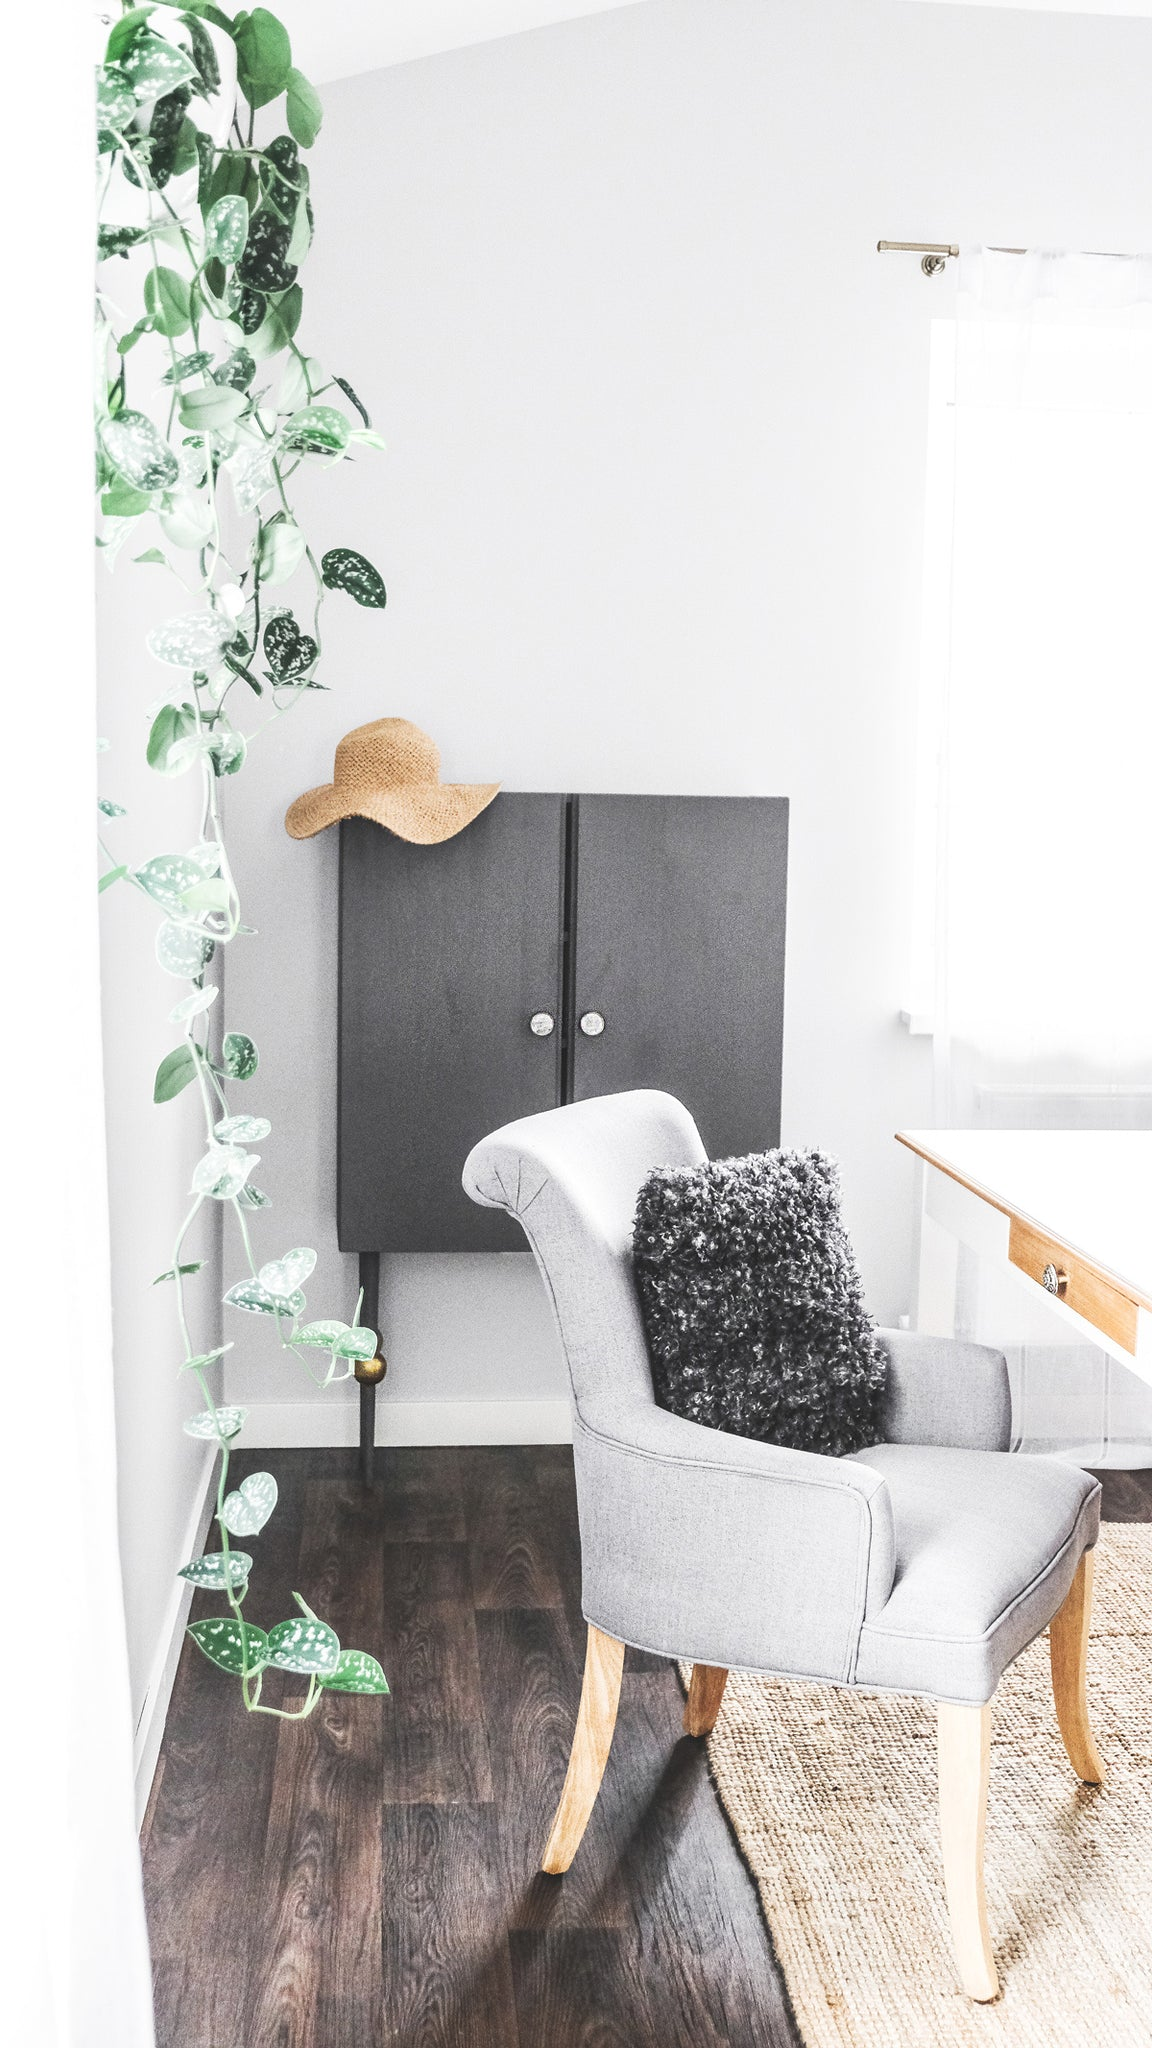 Bohemian workspace with grey armchair and rattan interior decor